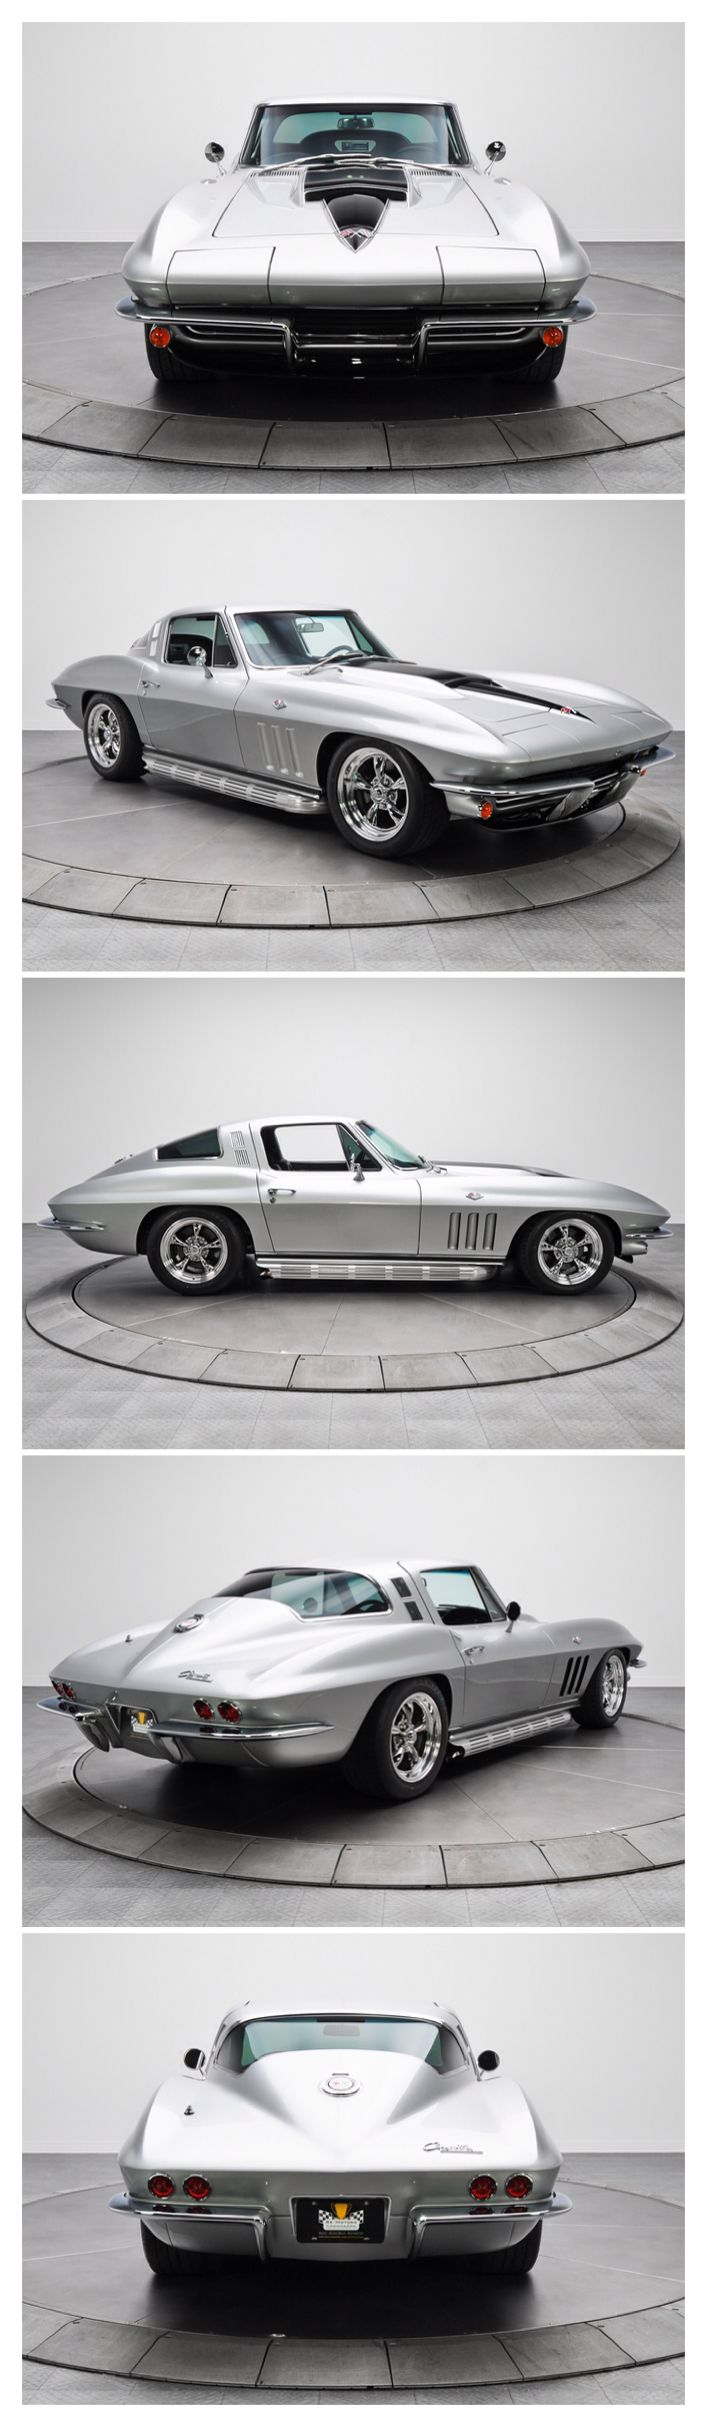 658 best american cars 1960 1970 images on pinterest vintage 1965 chevy corvette sting ray ls1 coupon code nicesup123 gets 25 off at leadingedgehealth fandeluxe Image collections